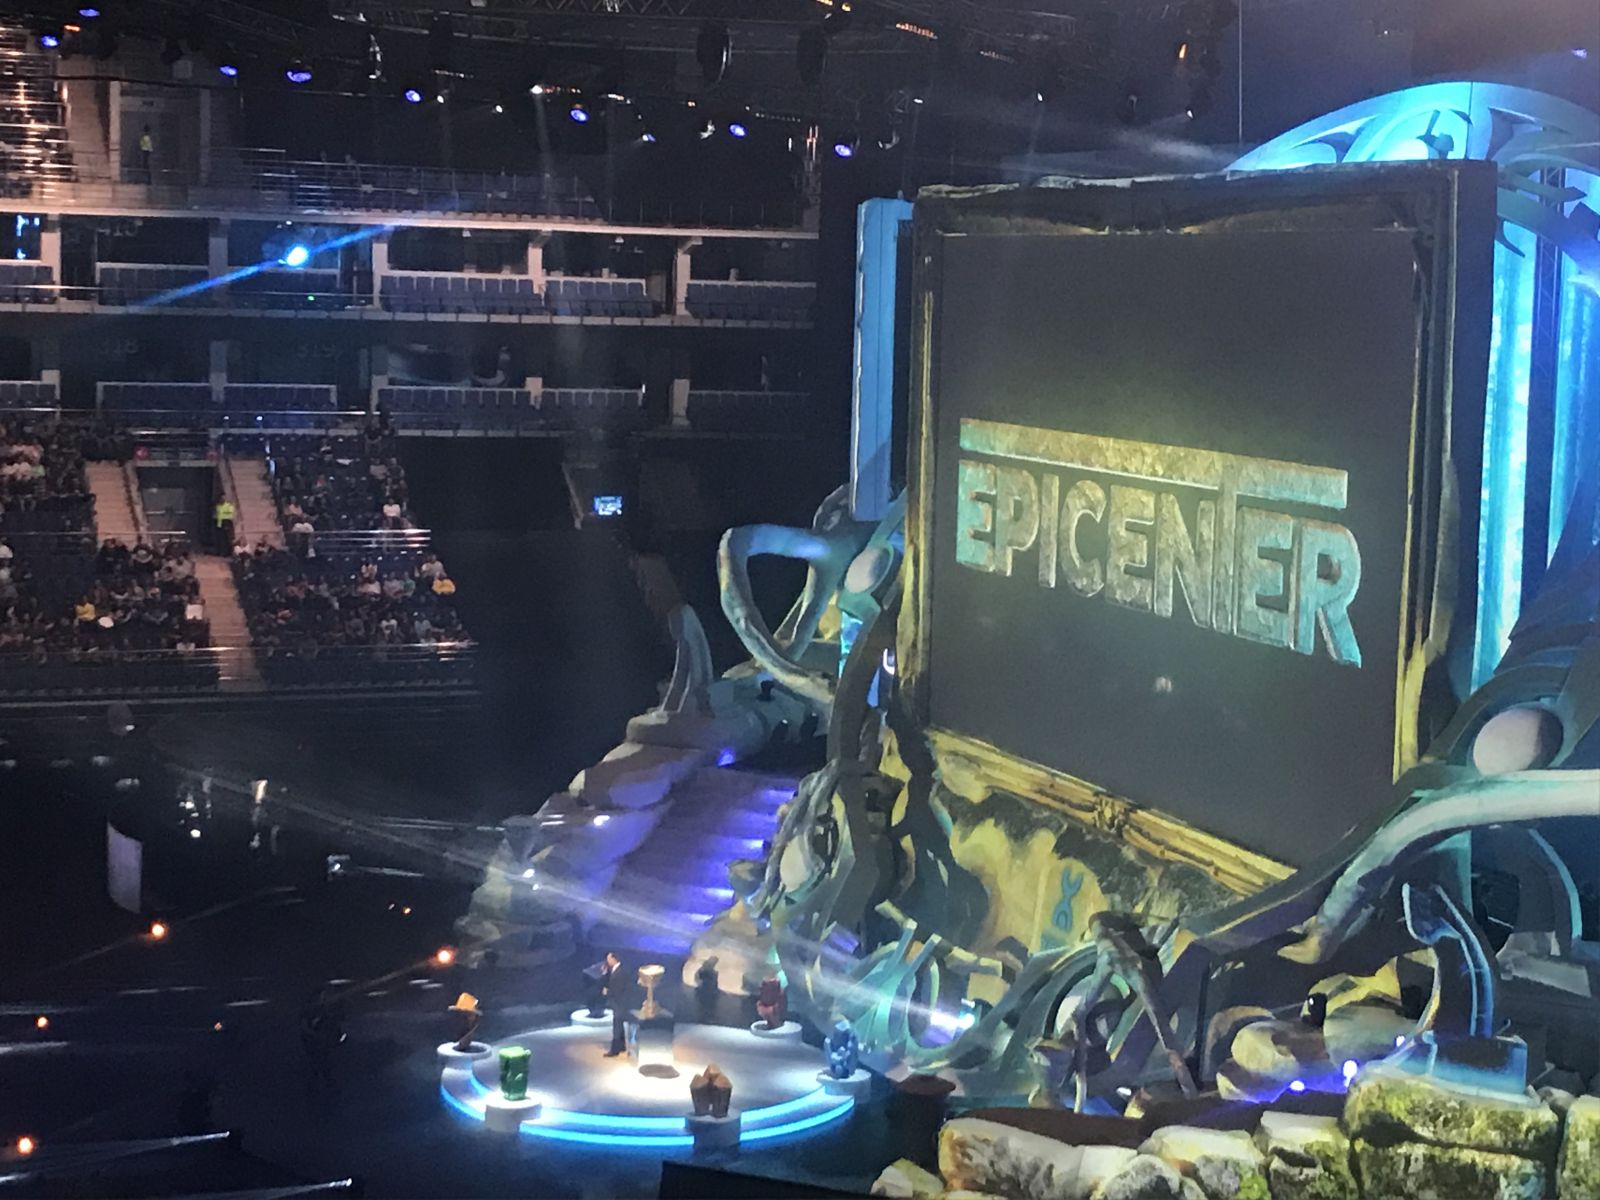 Pei-off stage of the tournament EPICENTER XL in the discipline of Dota 2